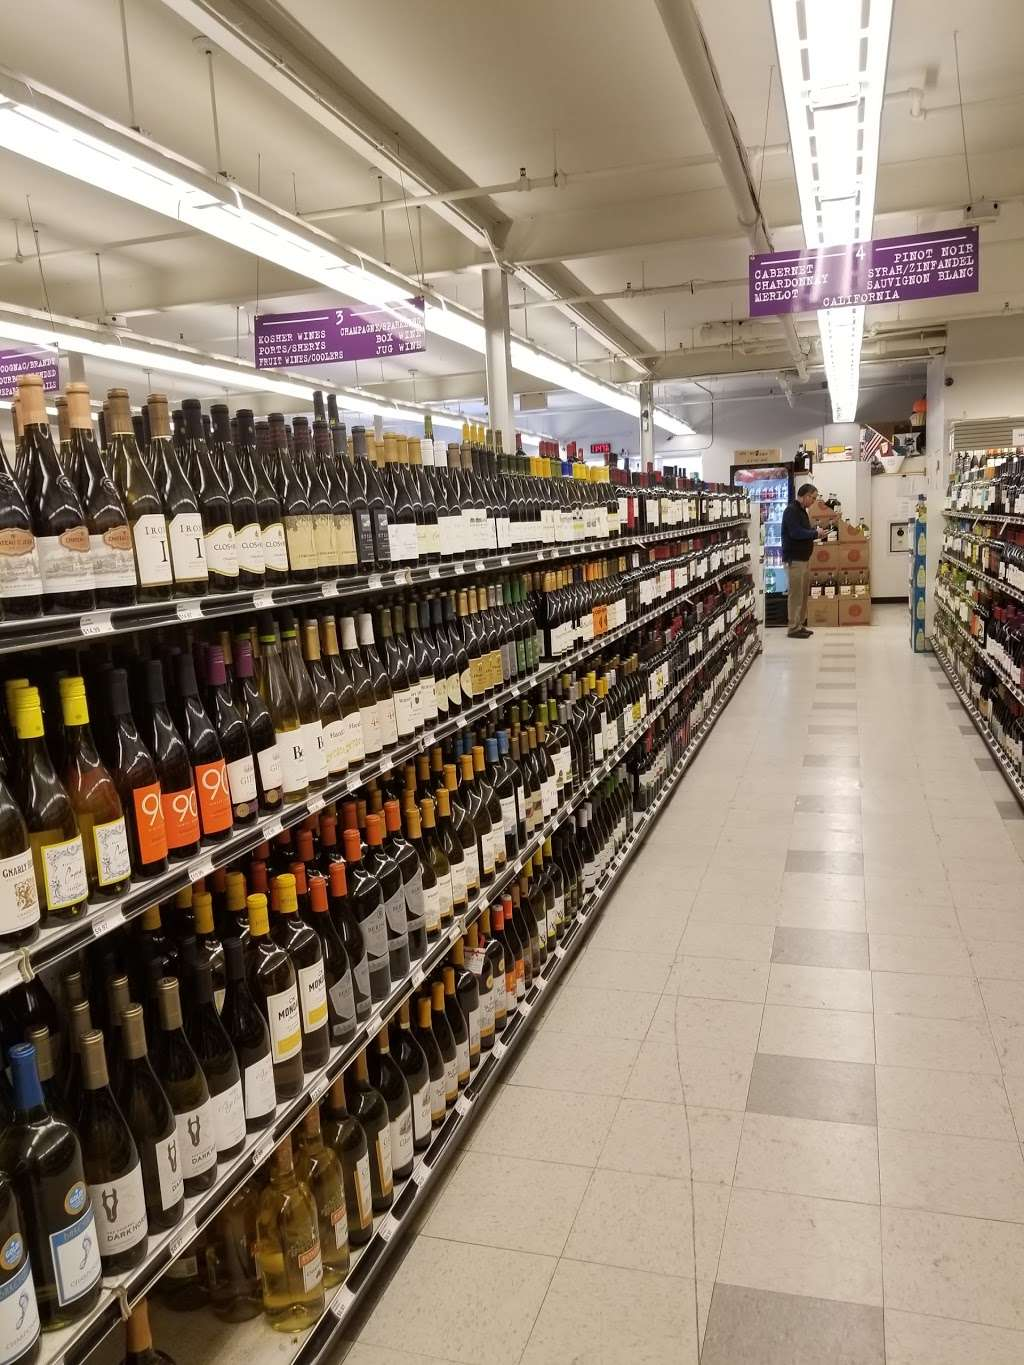 Palisades Wine & Liquor - store  | Photo 7 of 10 | Address: 534 Bergen Blvd, Palisades Park, NJ 07650, USA | Phone: (201) 944-0104